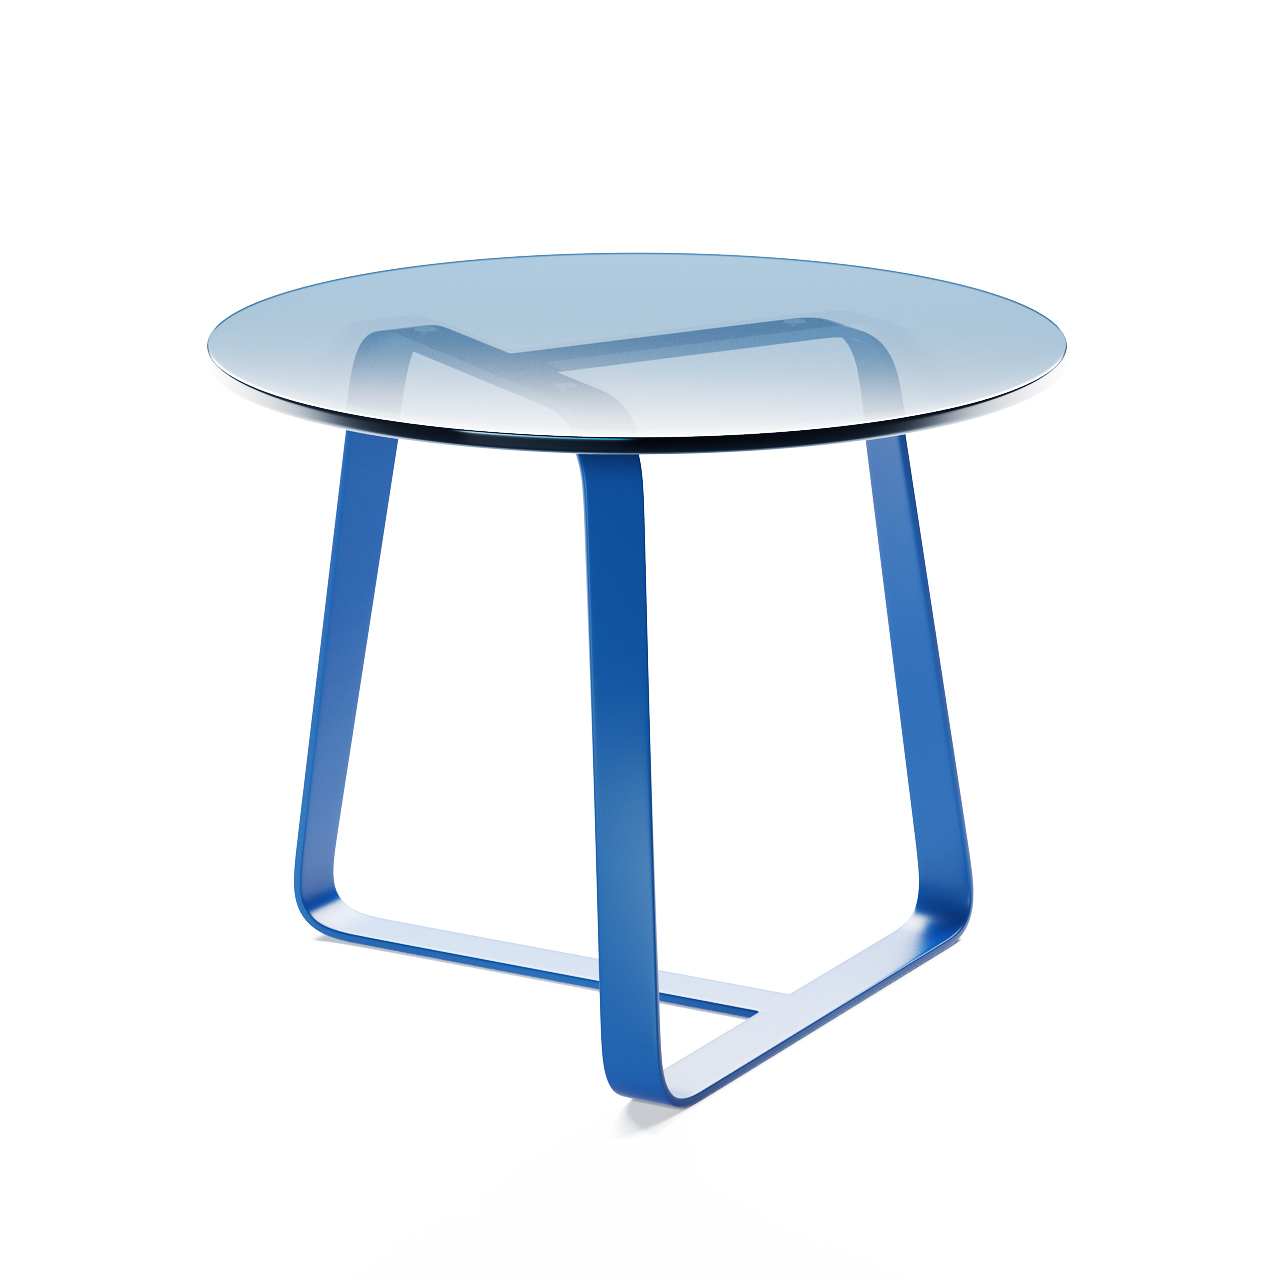 Twister Small Table Round by Desalto